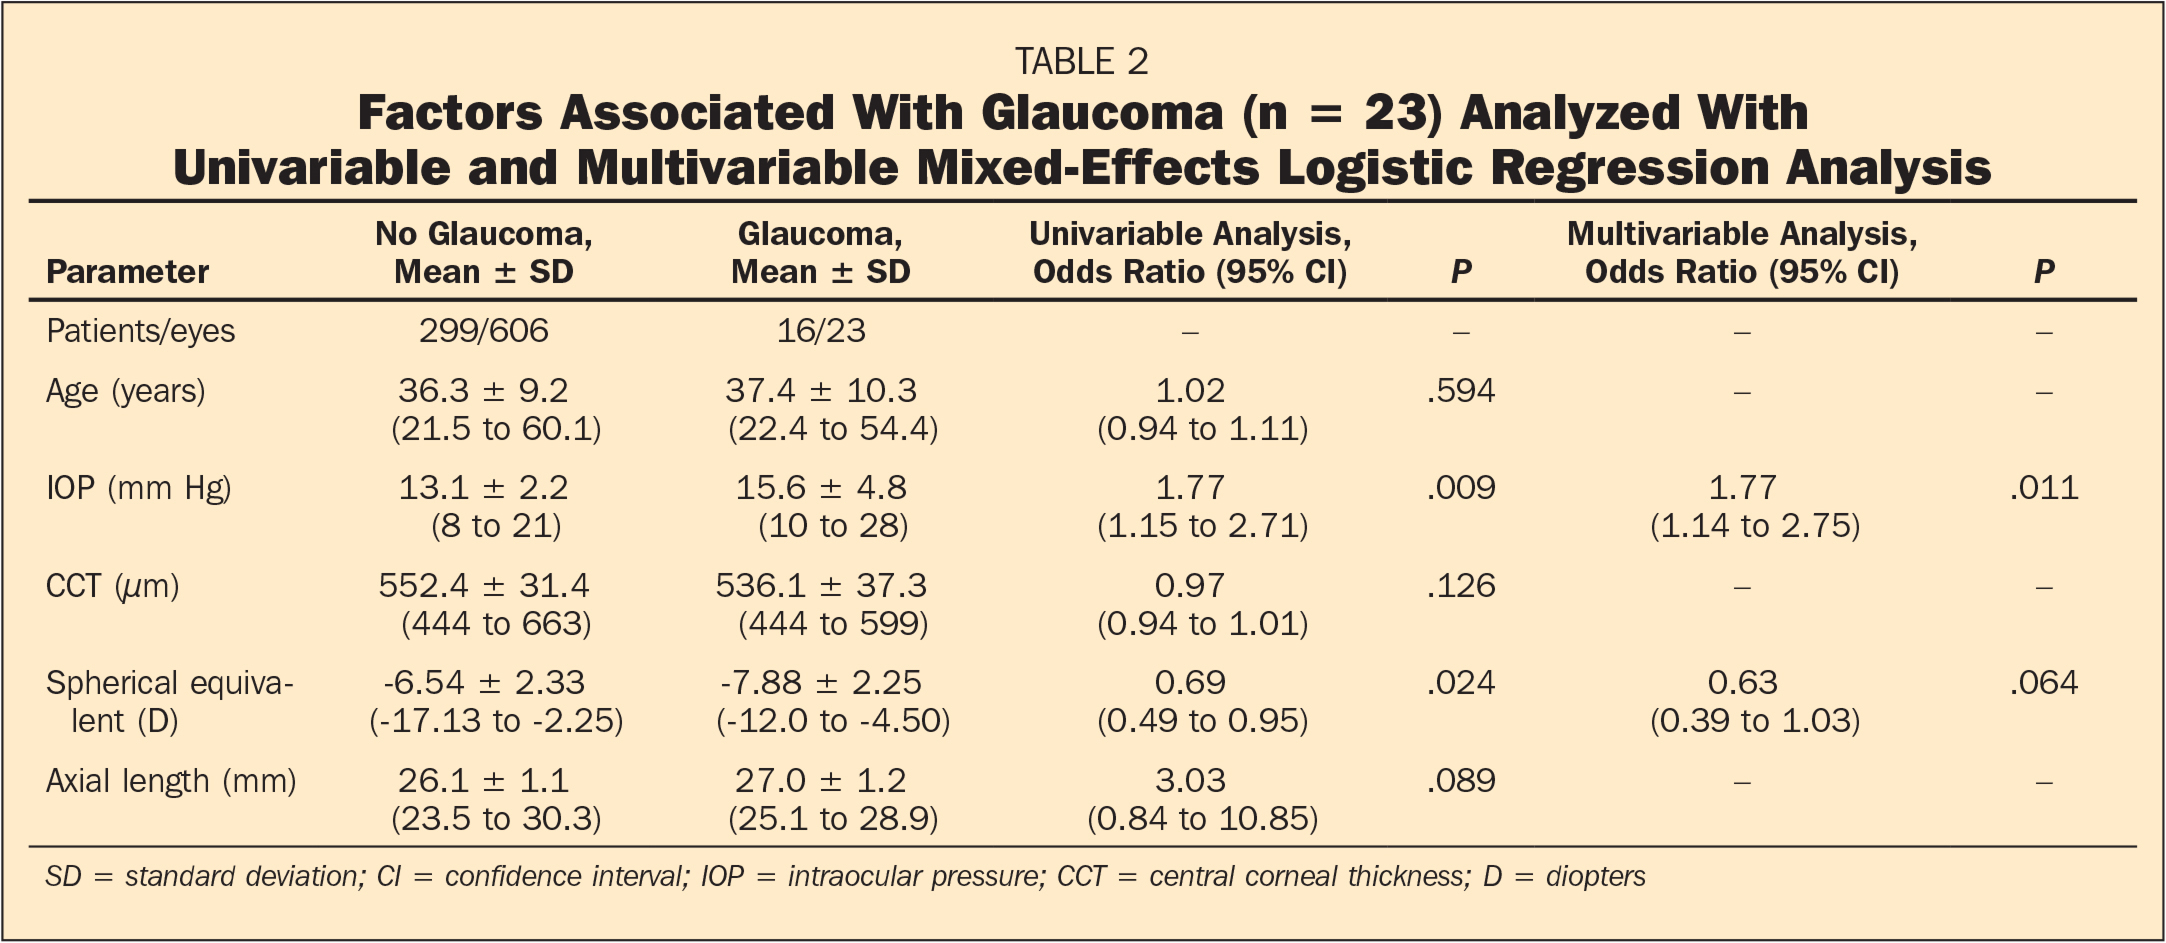 Factors Associated With Glaucoma (n = 23) Analyzed With Univariable and Multivariable Mixed-Effects Logistic Regression Analysis